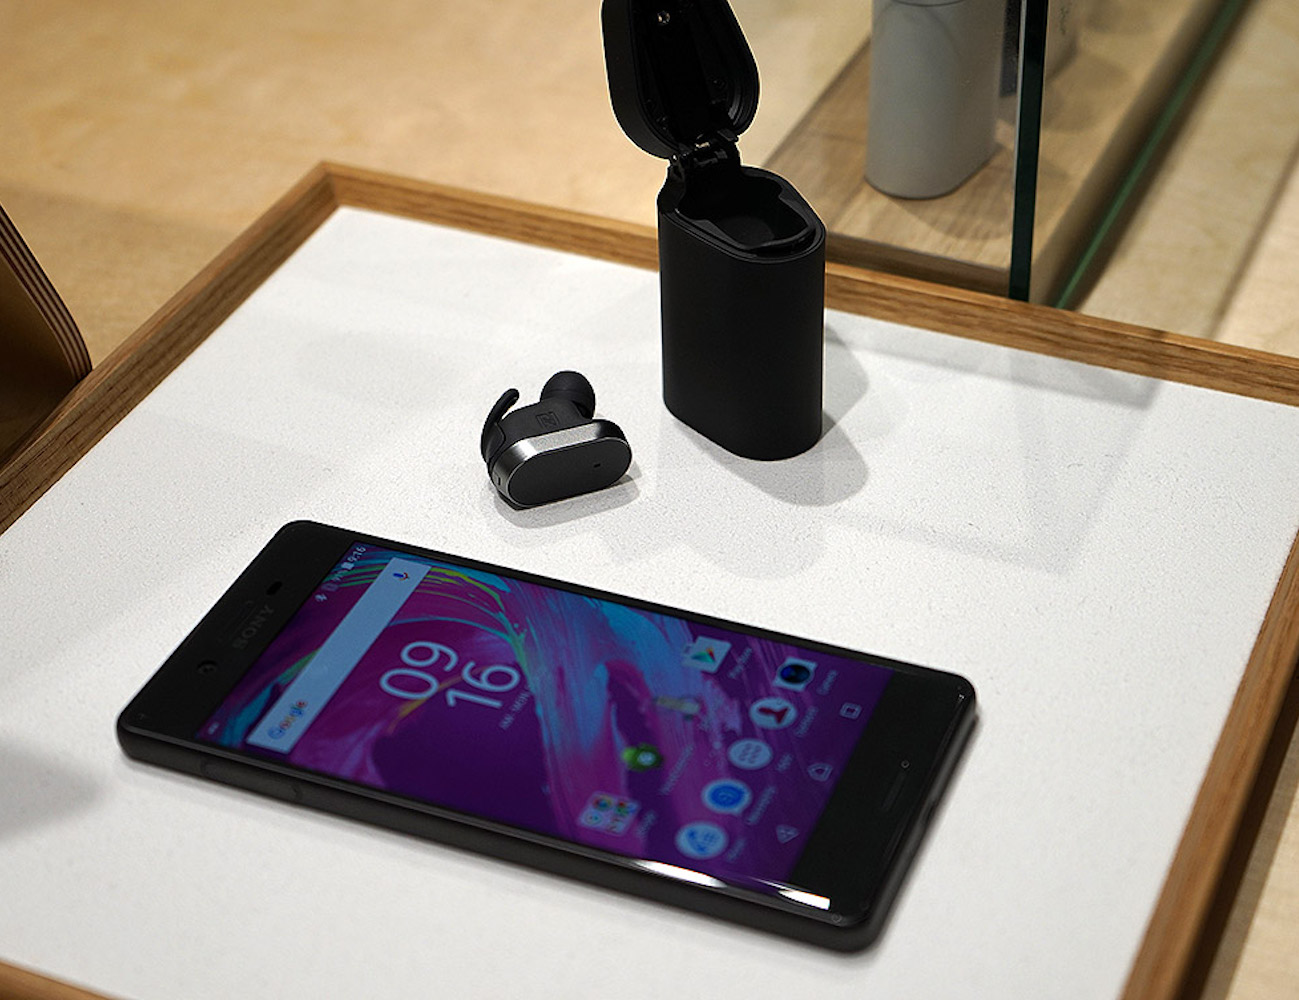 sony xperia ear intelligent bluetooth headset review the gadget flow. Black Bedroom Furniture Sets. Home Design Ideas